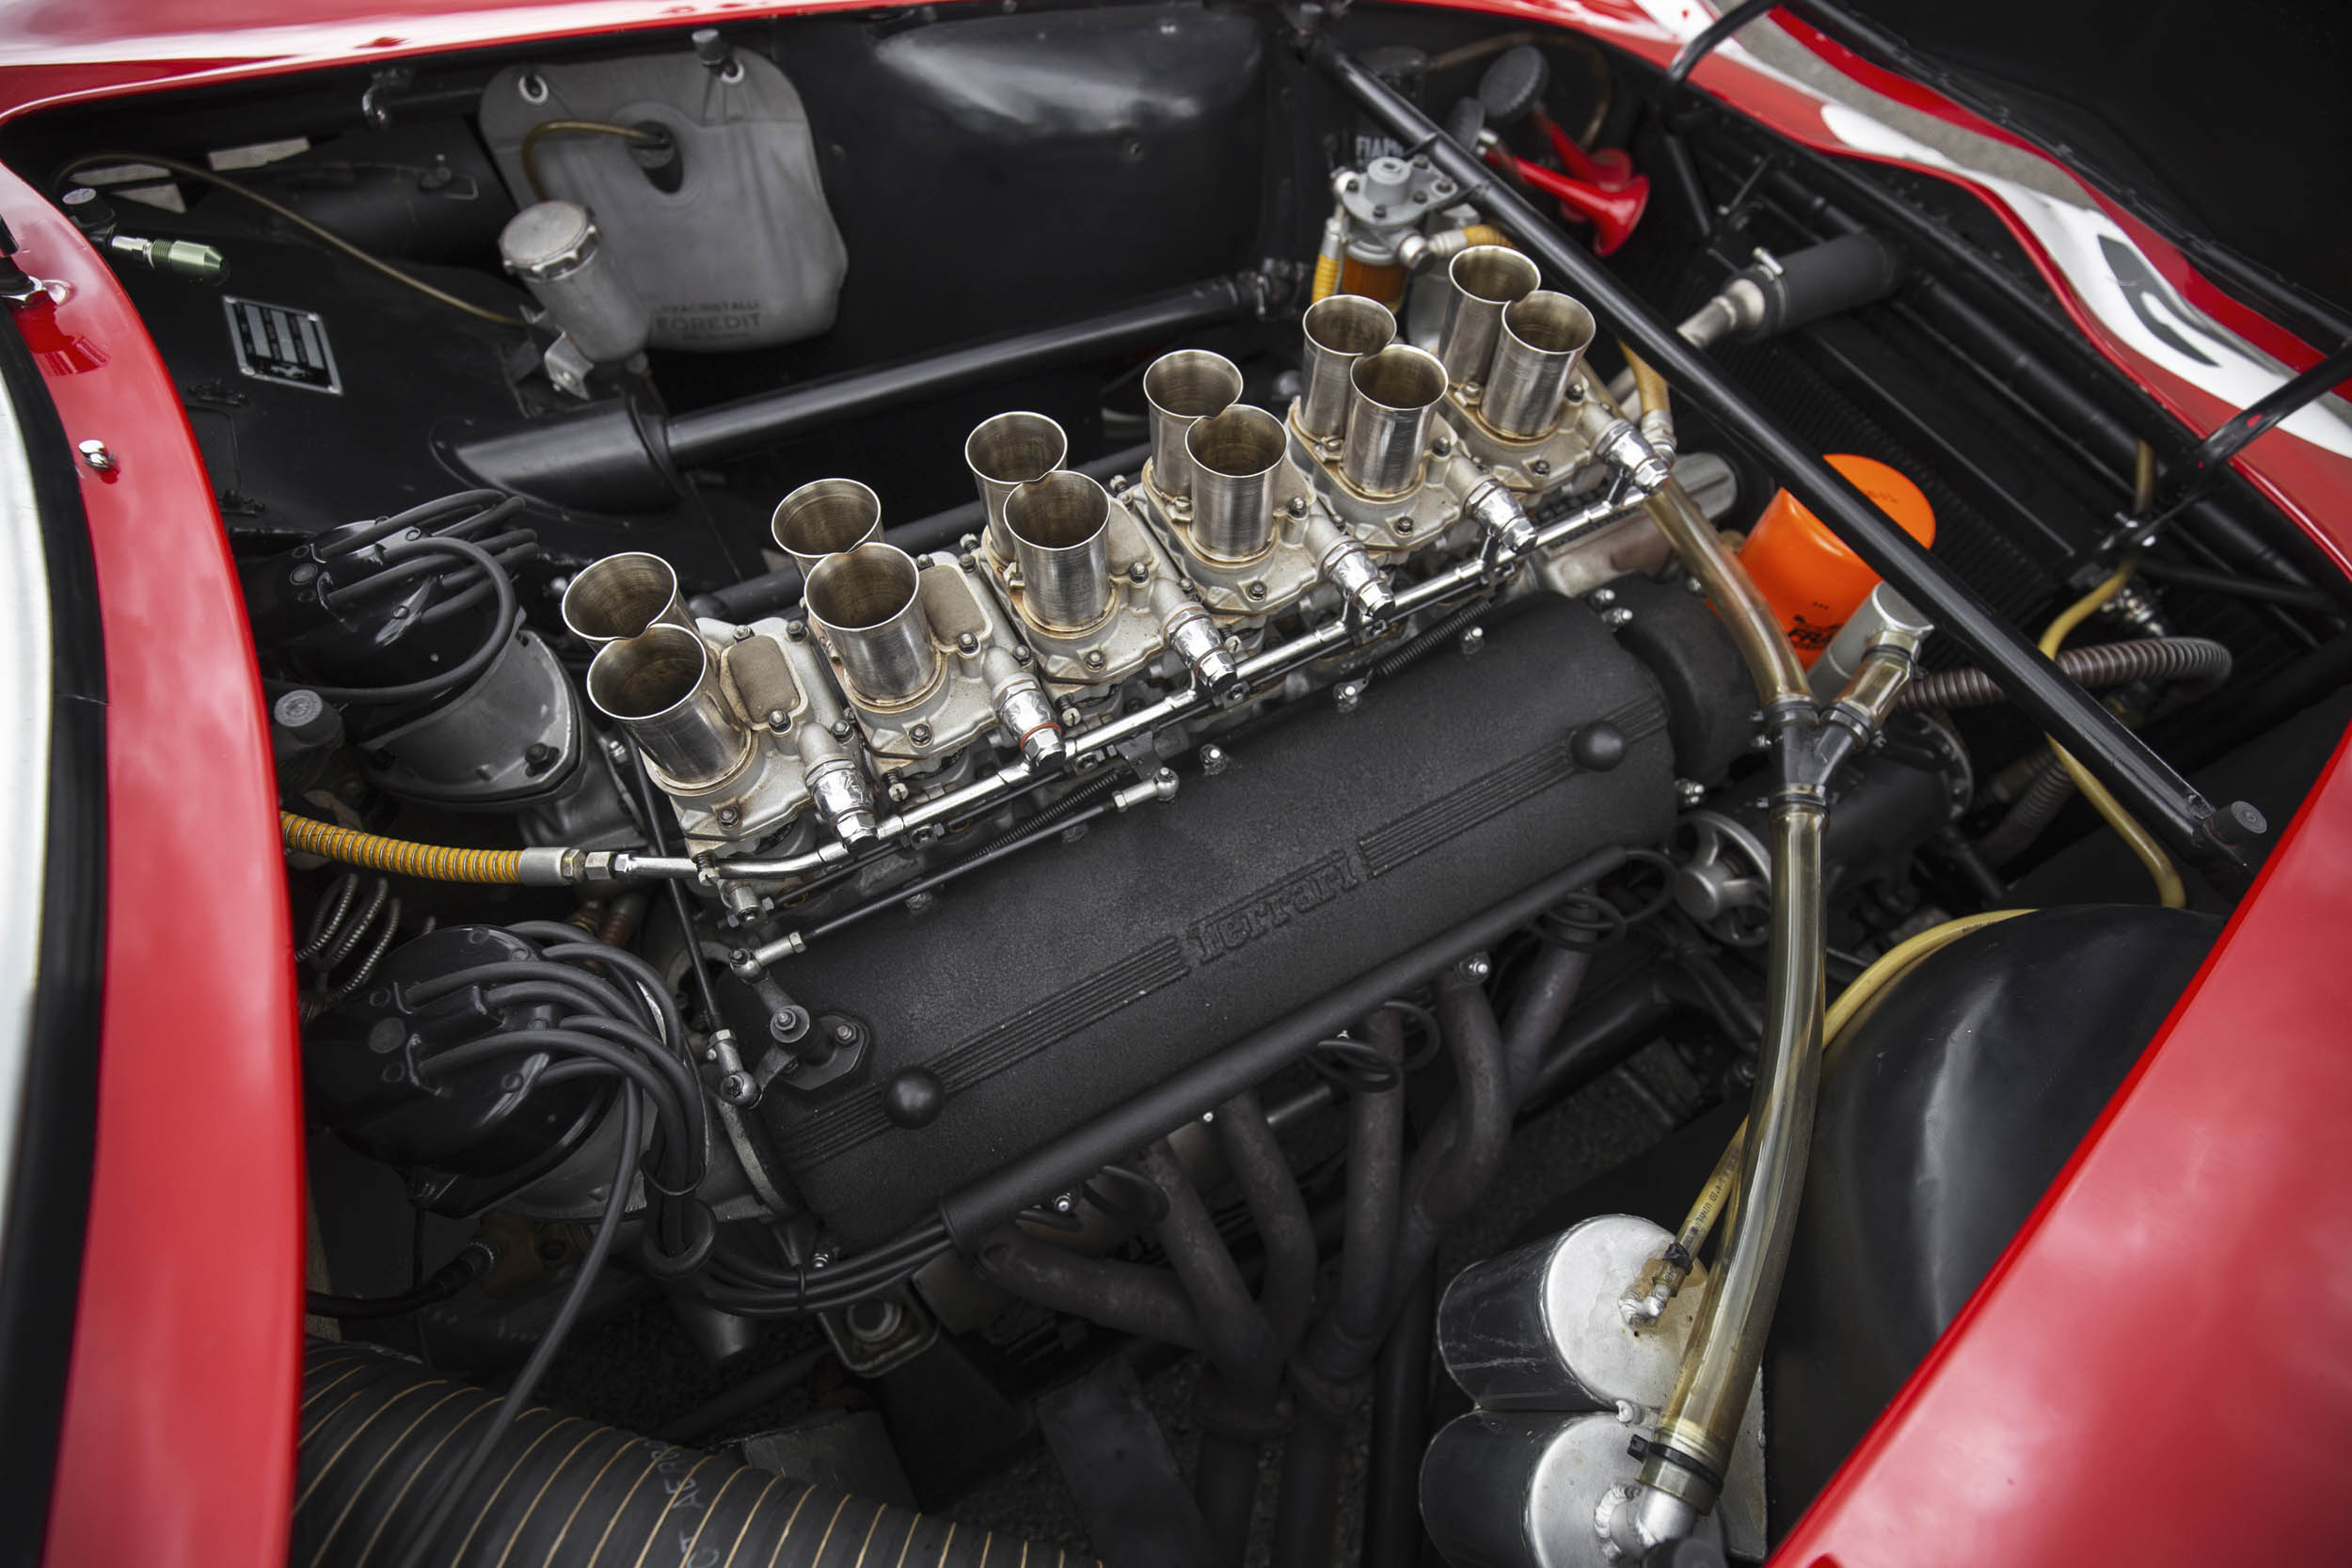 1962 Ferrari 250 GTO engine